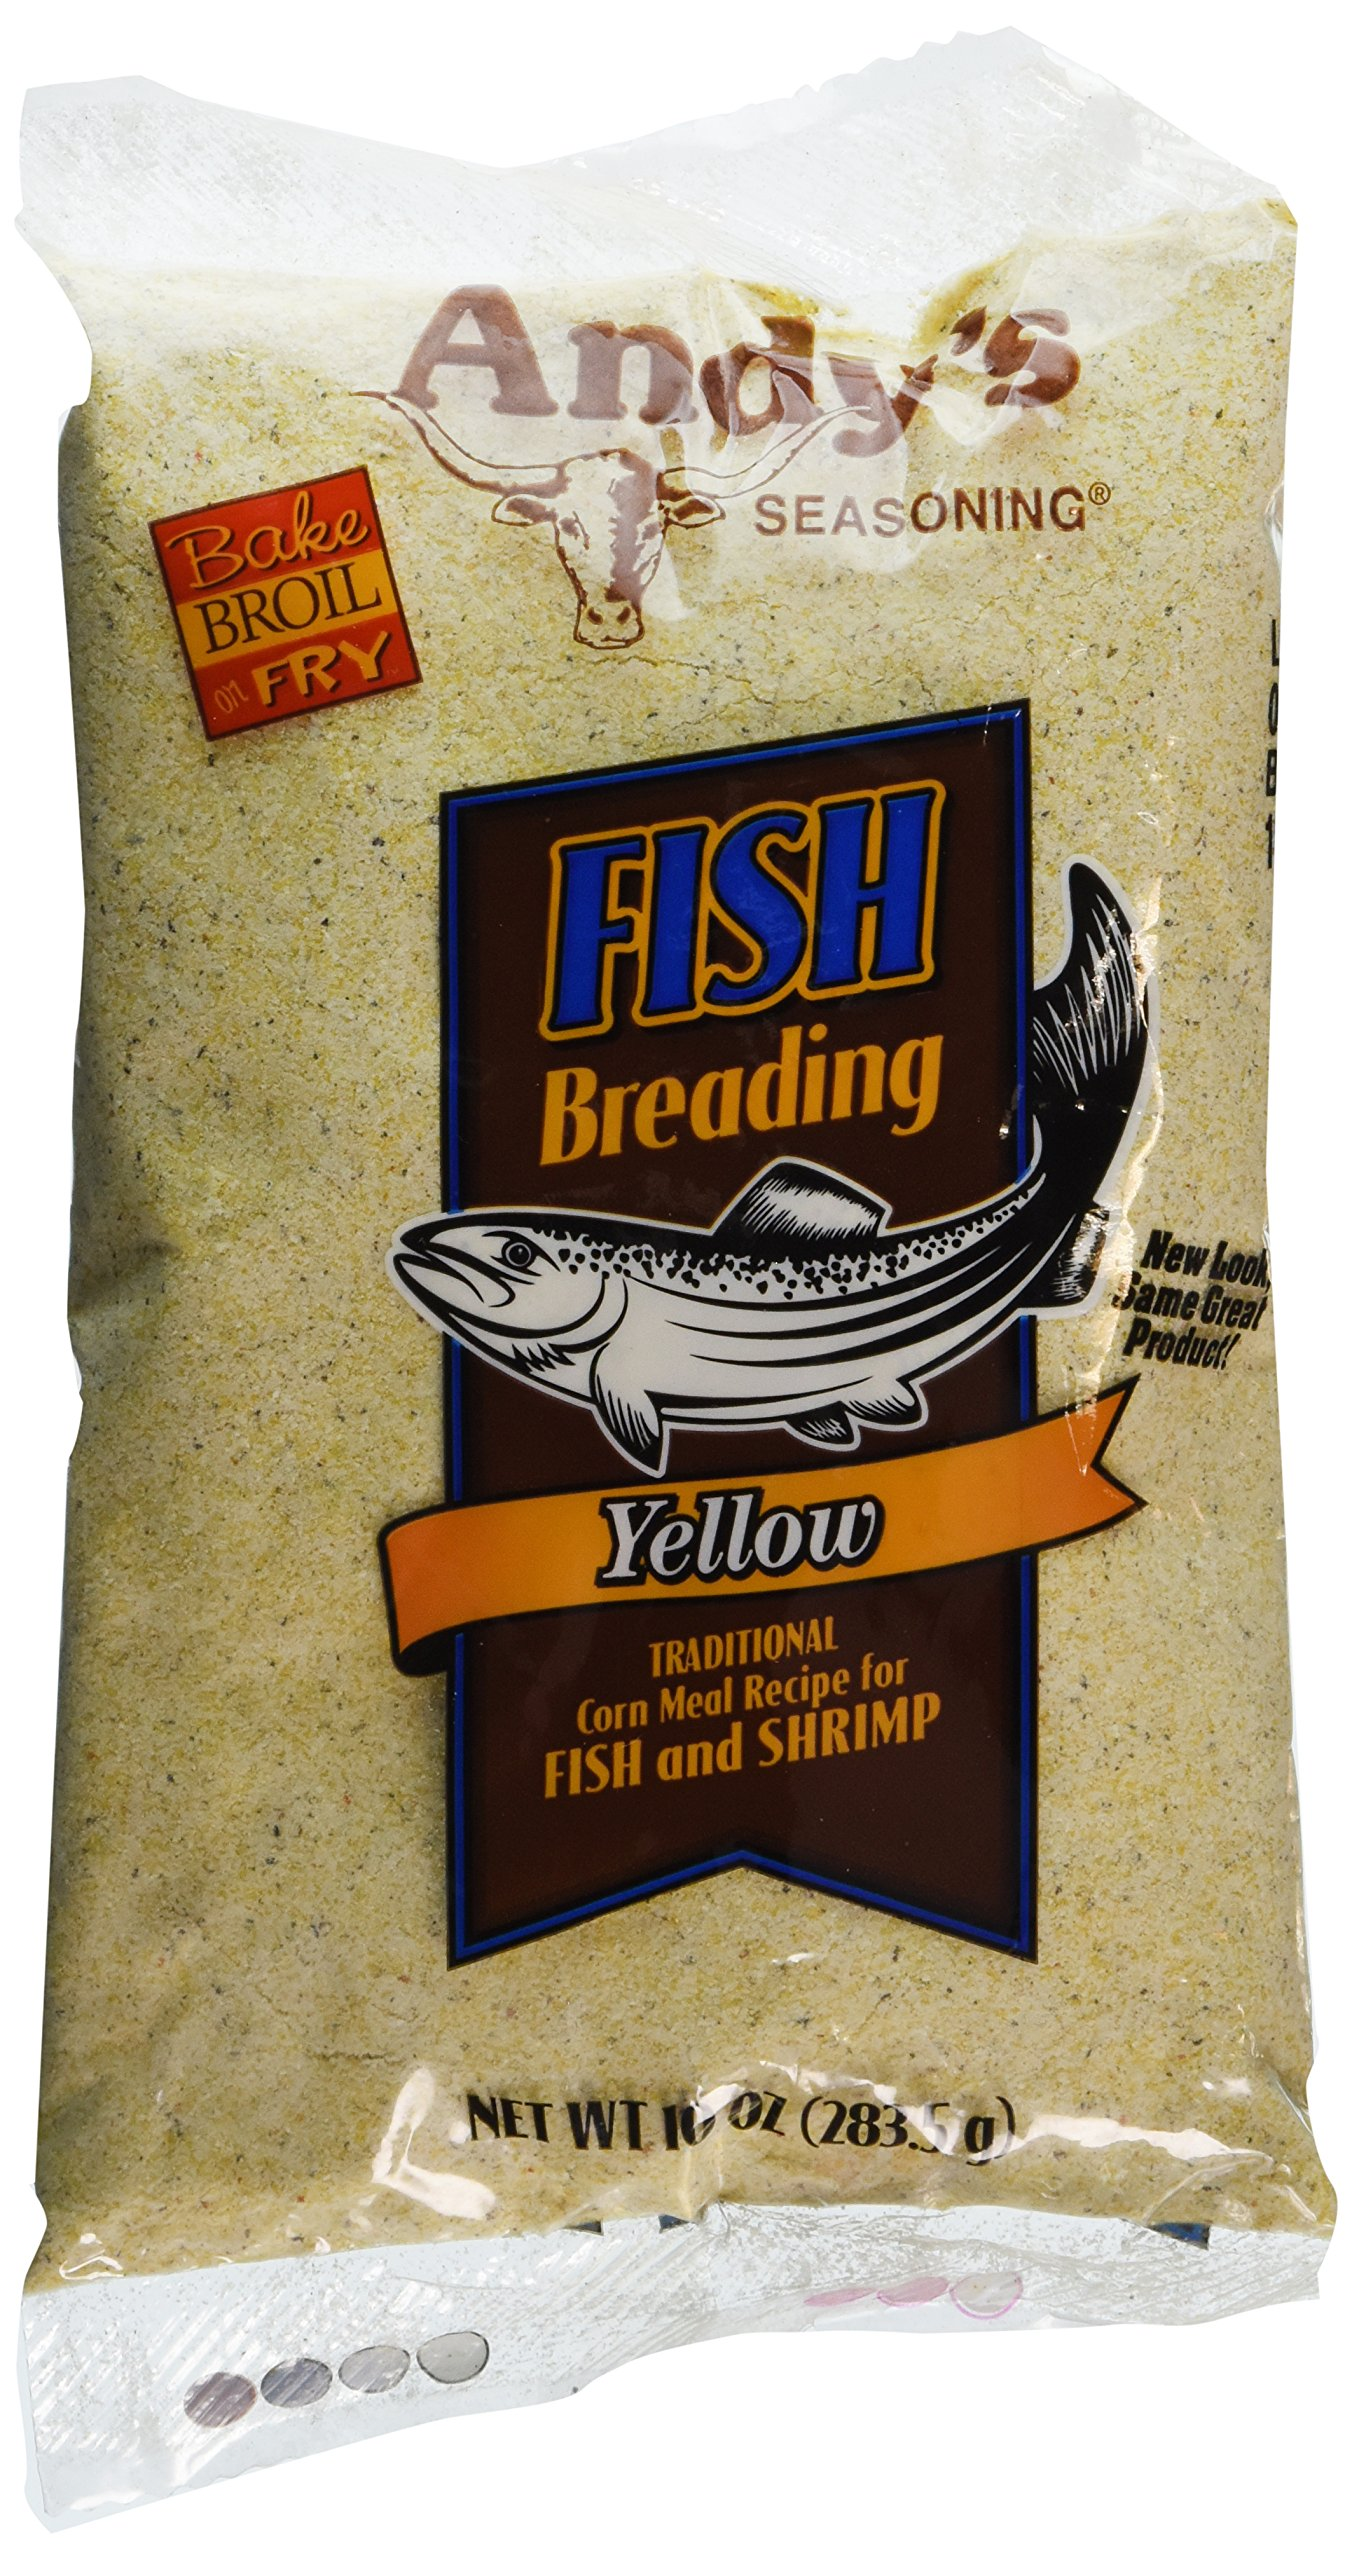 Andy's Seasoning Yellow Fish Breading 10oz(Pack of 3)